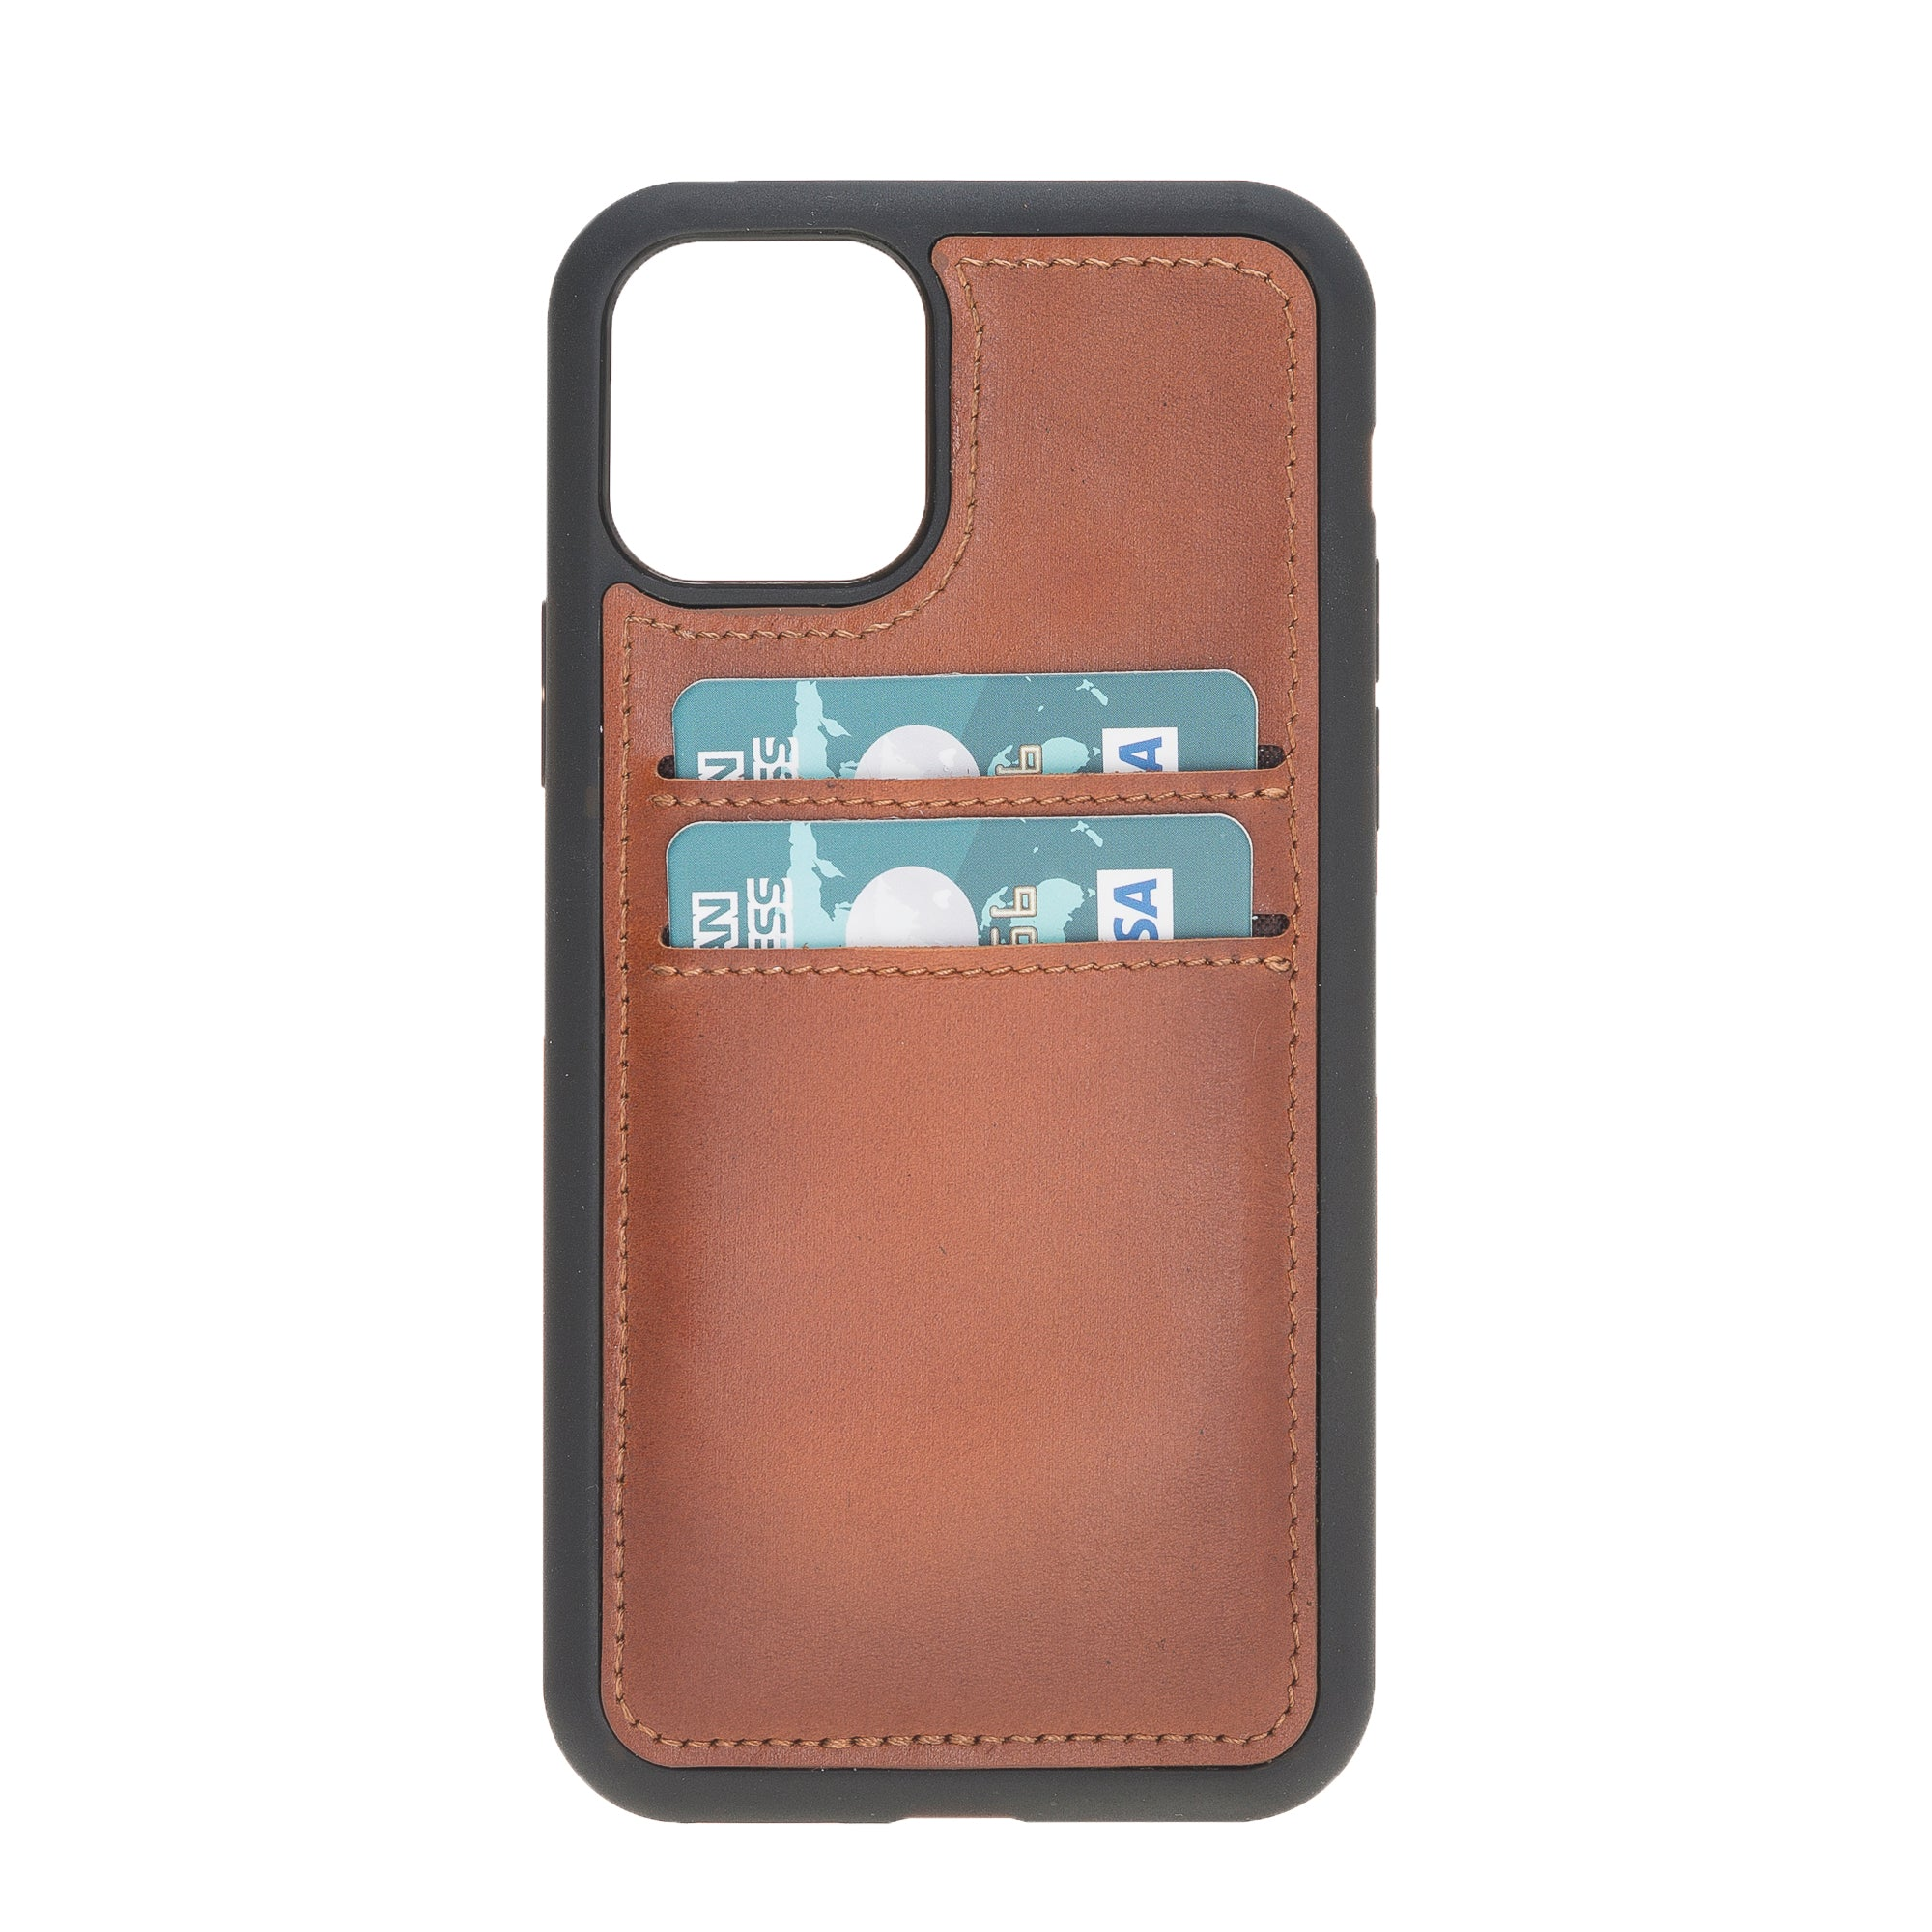 "Brown Burnished Apple iPhone 11 PRO (5.8"") Leather Case w/ Card Slots"